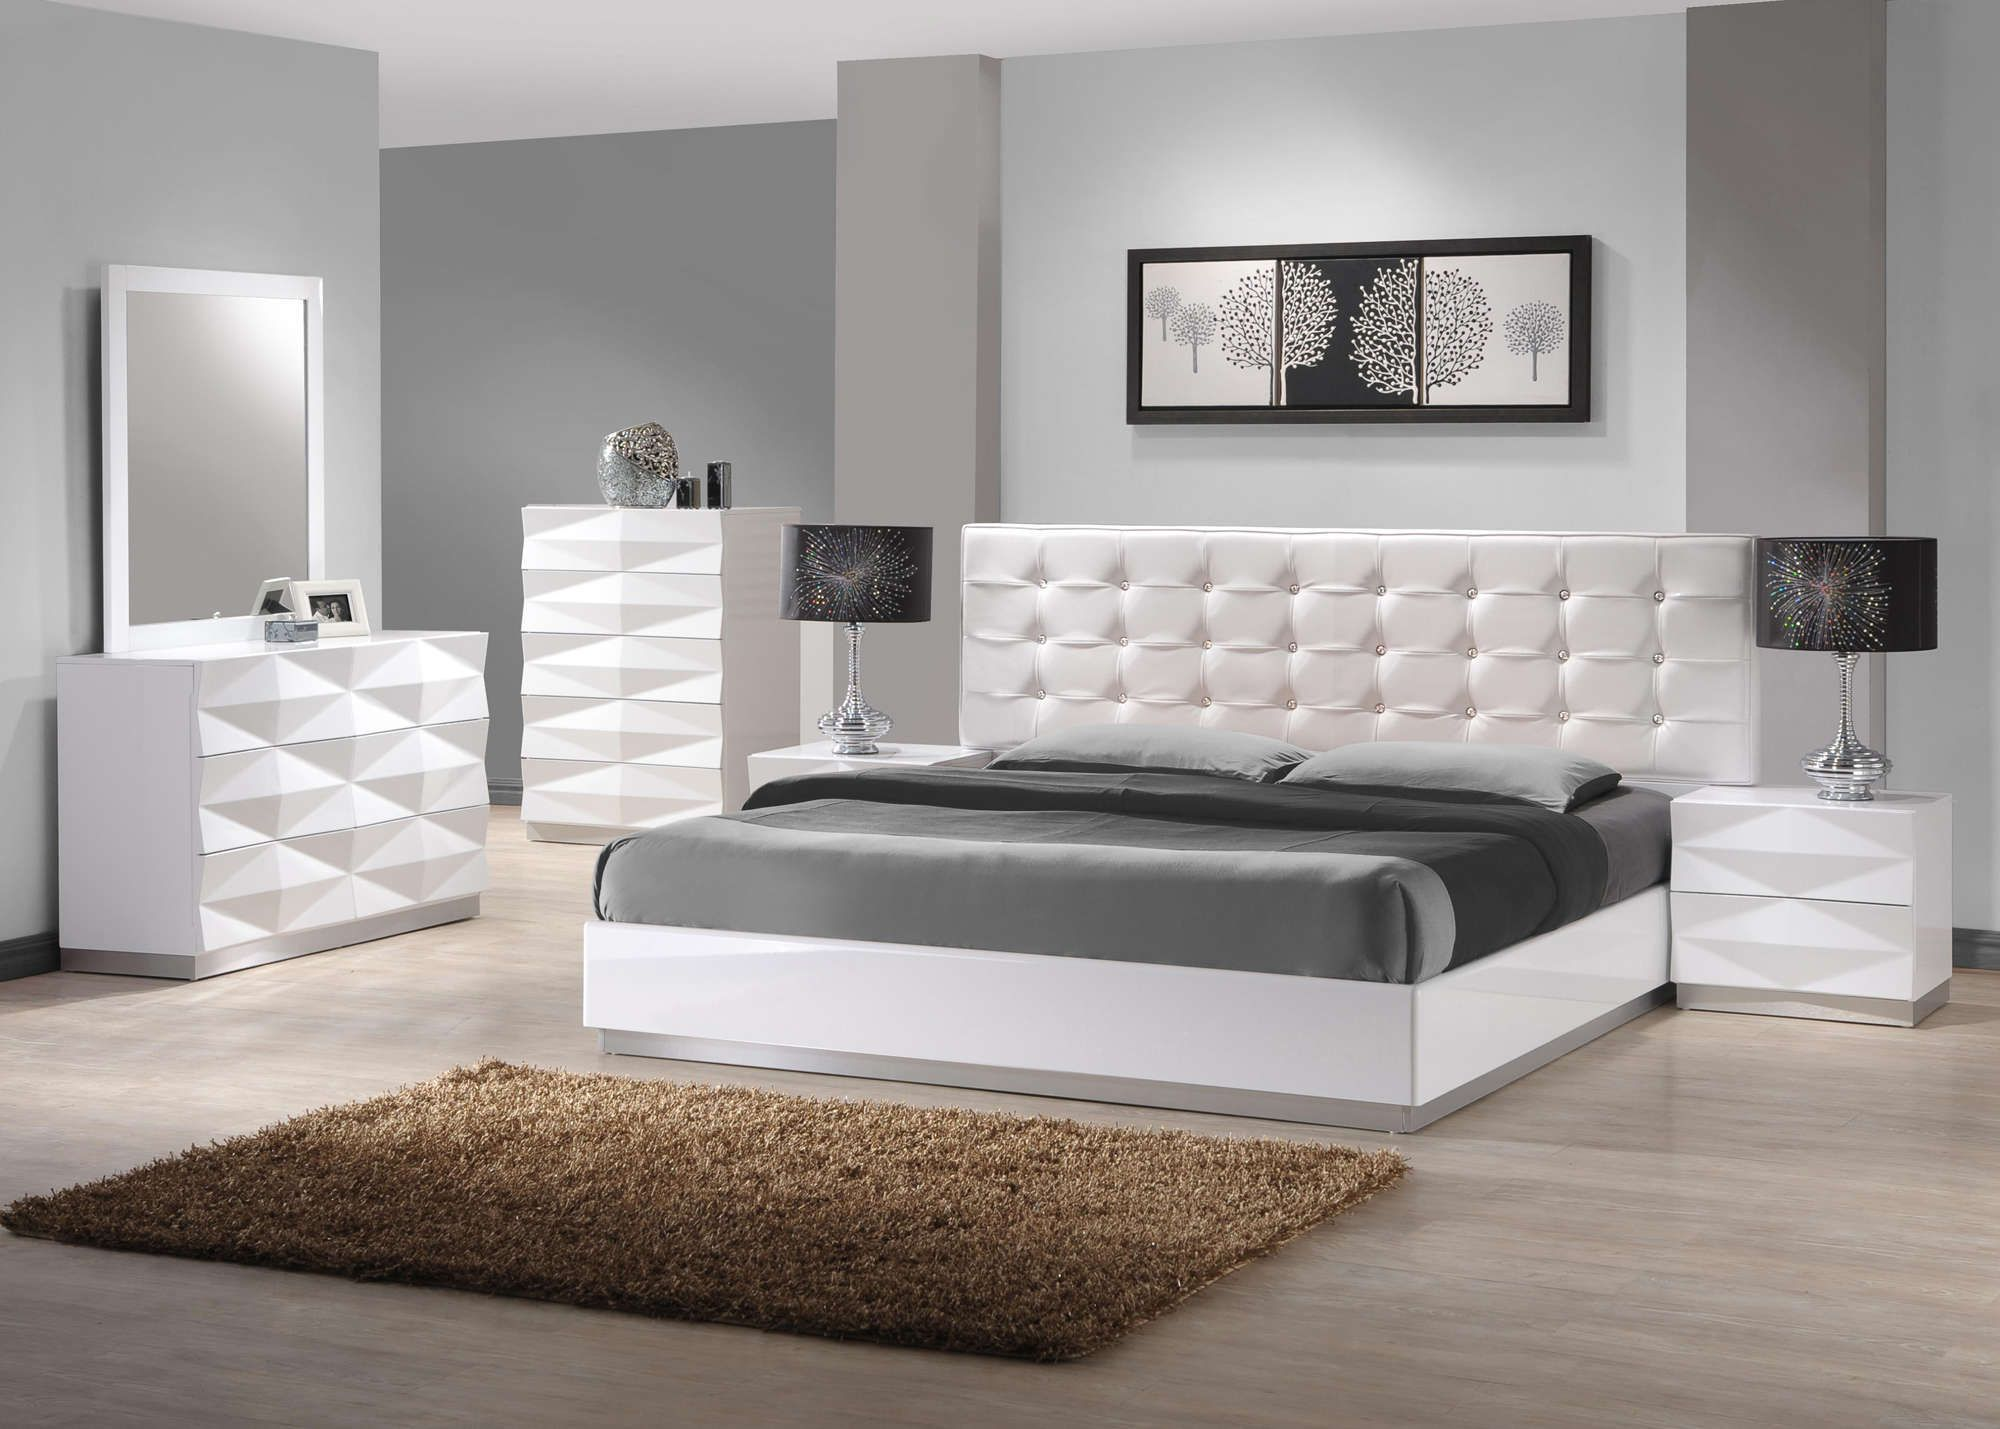 Modern Bedroom Sets King Luxury White Bedroom Decoration Ideas Bright Grey Wall And Beige